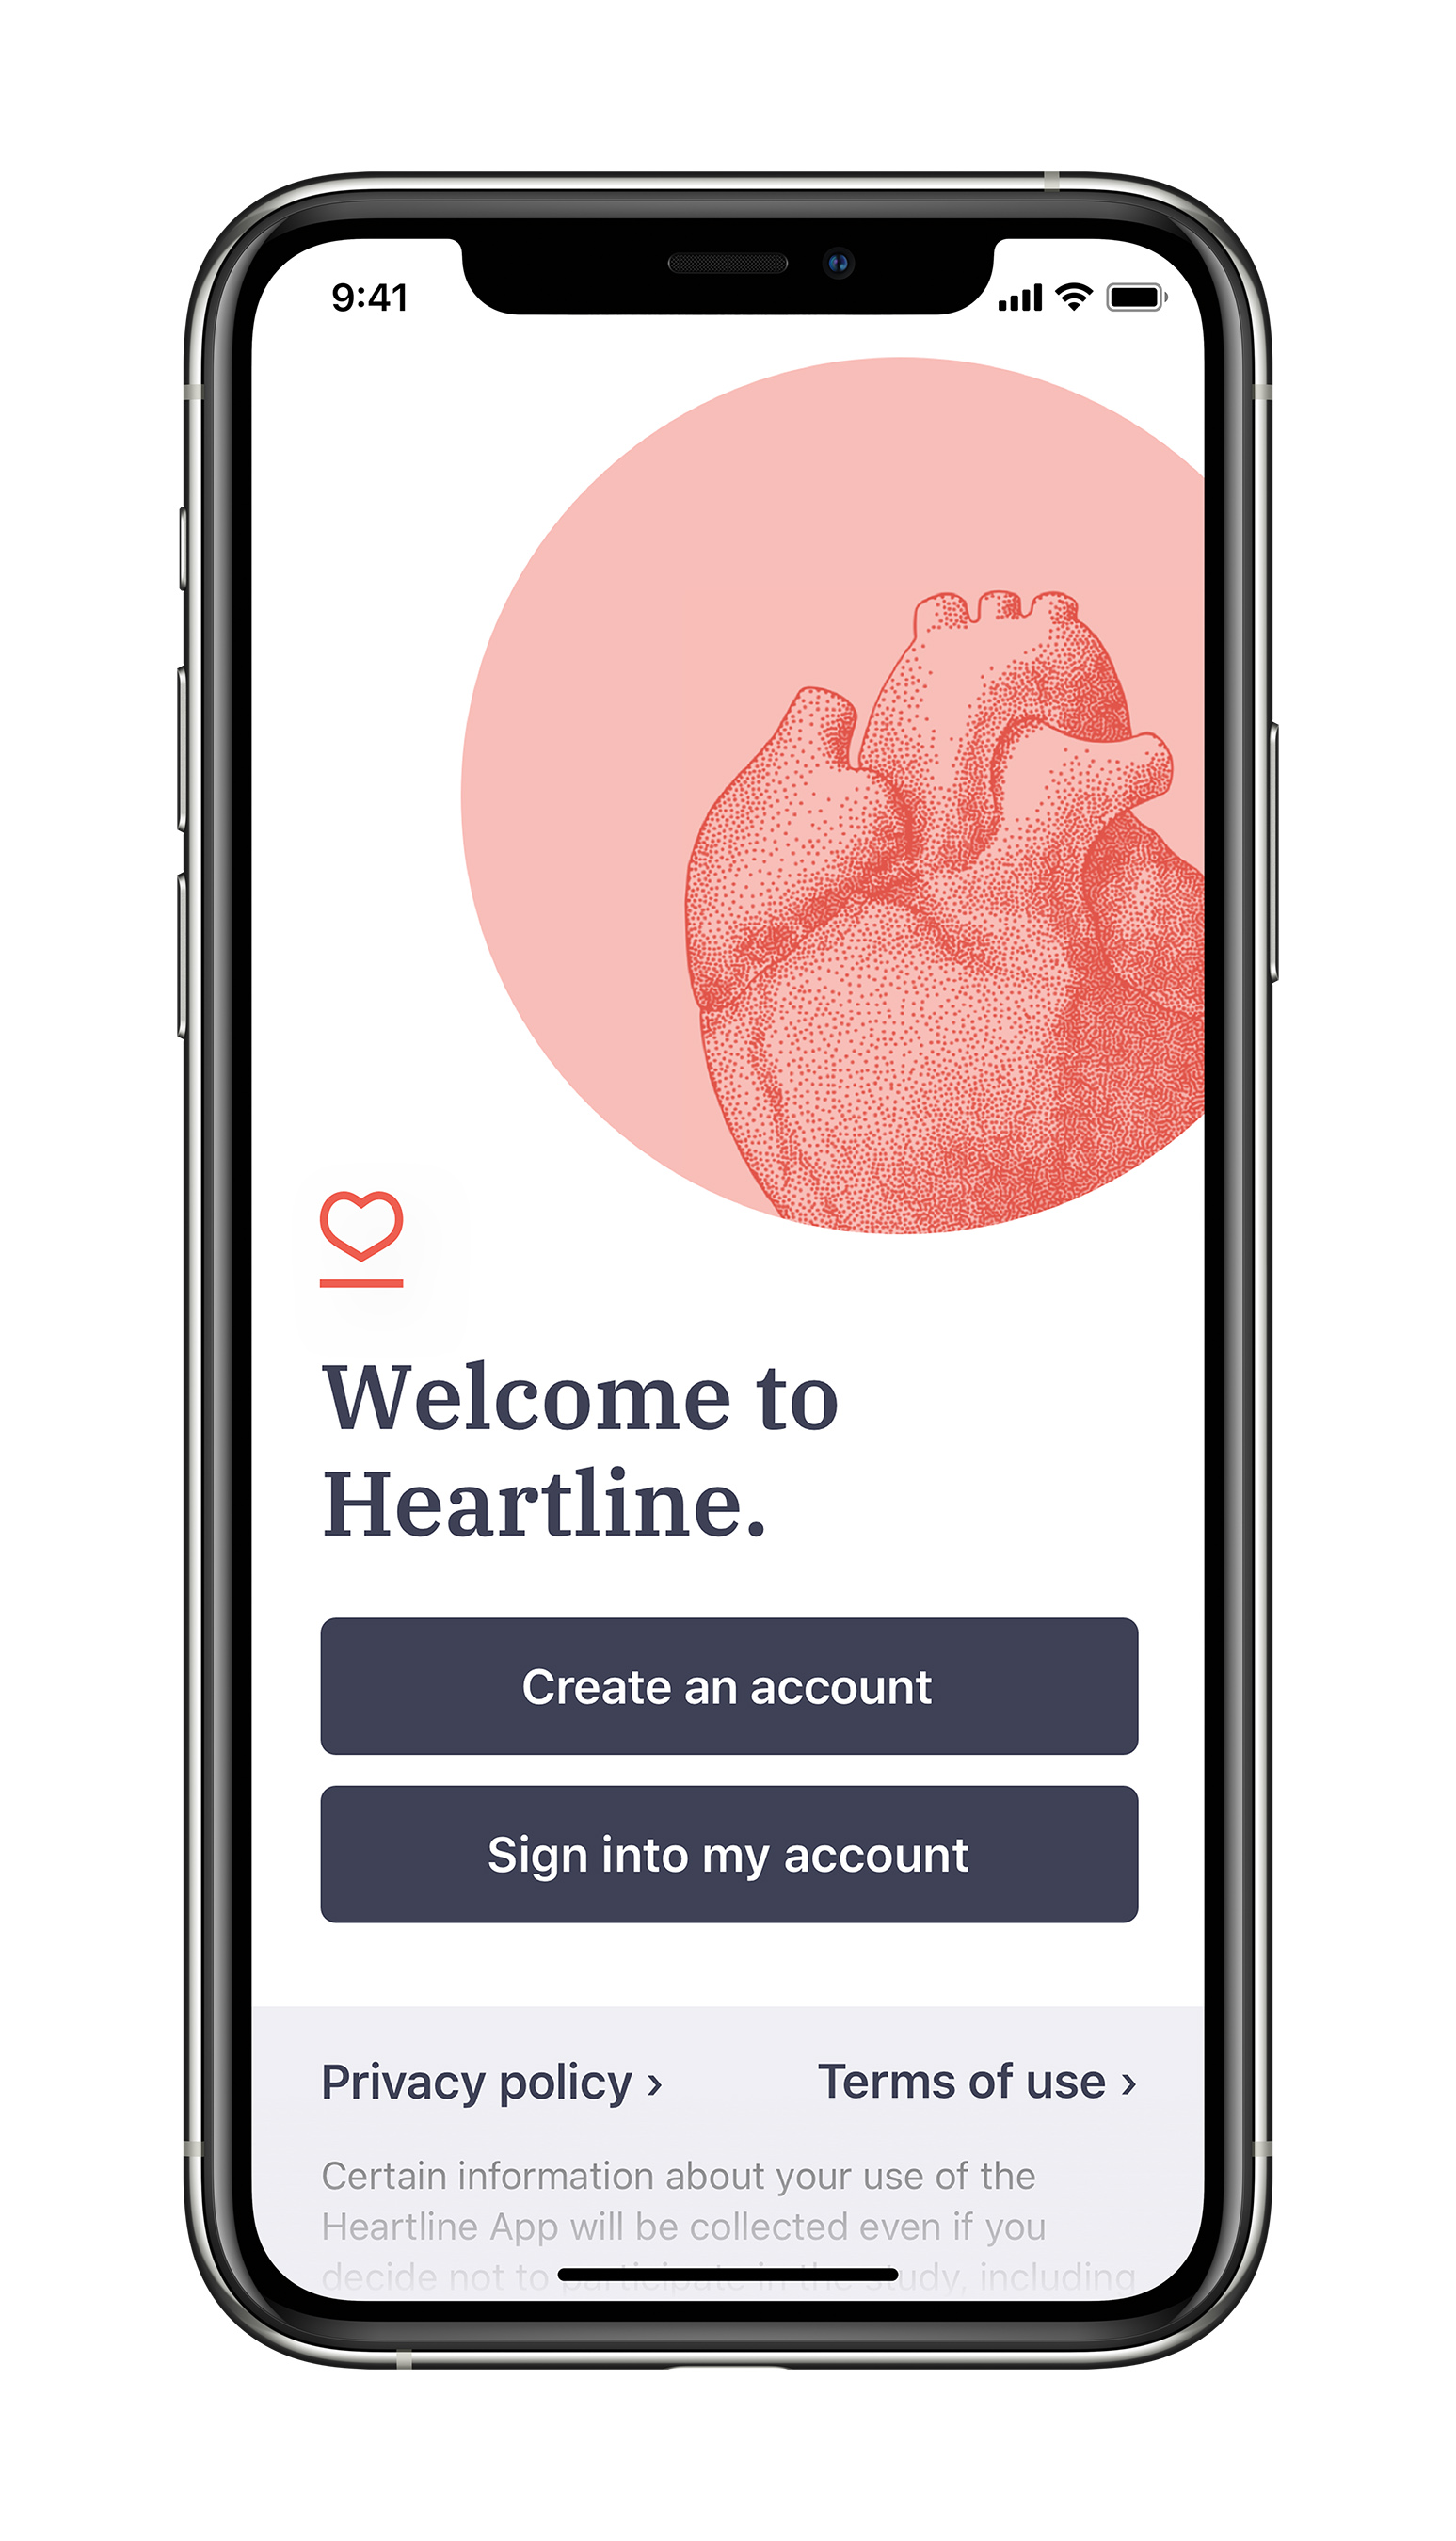 The Heartline™ Study from Johnson & Johnson, in collaboration with Apple, is now open for enrollment. Visit Heartline.com to see if you're eligible to enroll.